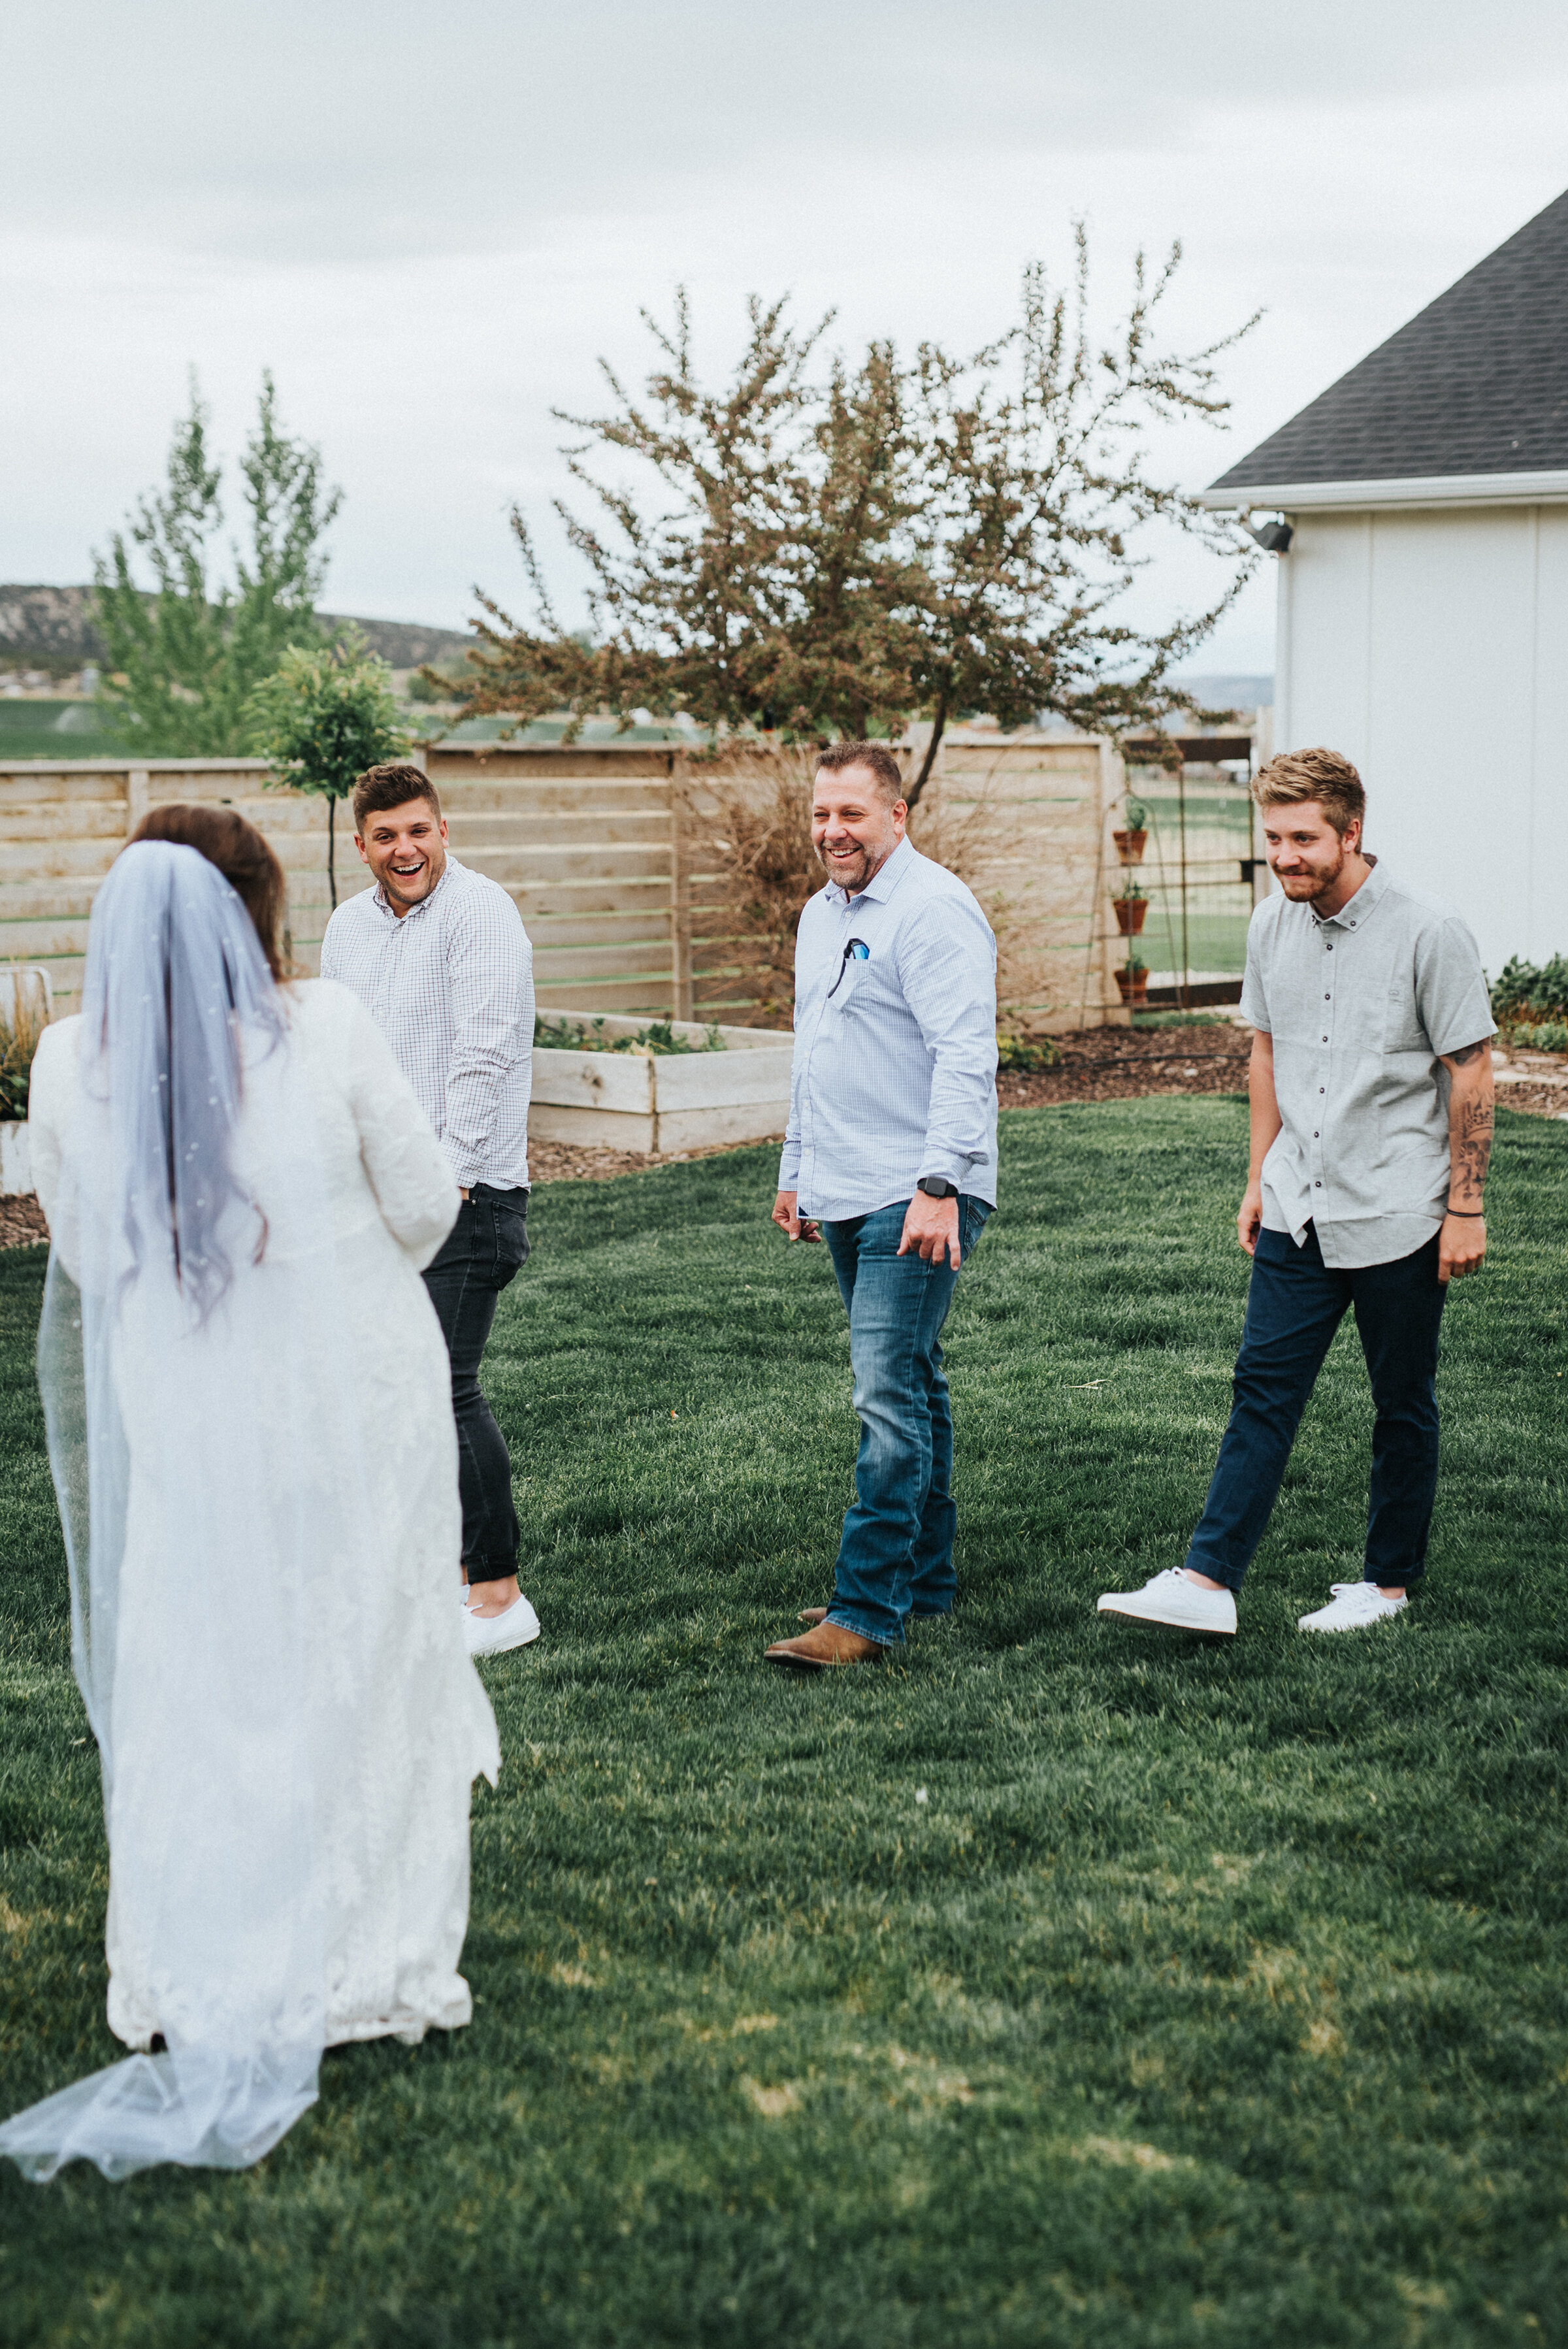 Wedding day in Ephraim, Utah at the rented Airbnb was intimate and perfect for a rustic, western, outdoor ceremony for this bride and groom. photoshoot in Ephraim Utah photography wedding outdoor location western inspired rustic Airbnb photo aesthetic #ephraimutah #utahphotography #weddingdayphotography #gettingmarried #rusticwedding #utahwedding #westernstyle #weddingphotoshoot